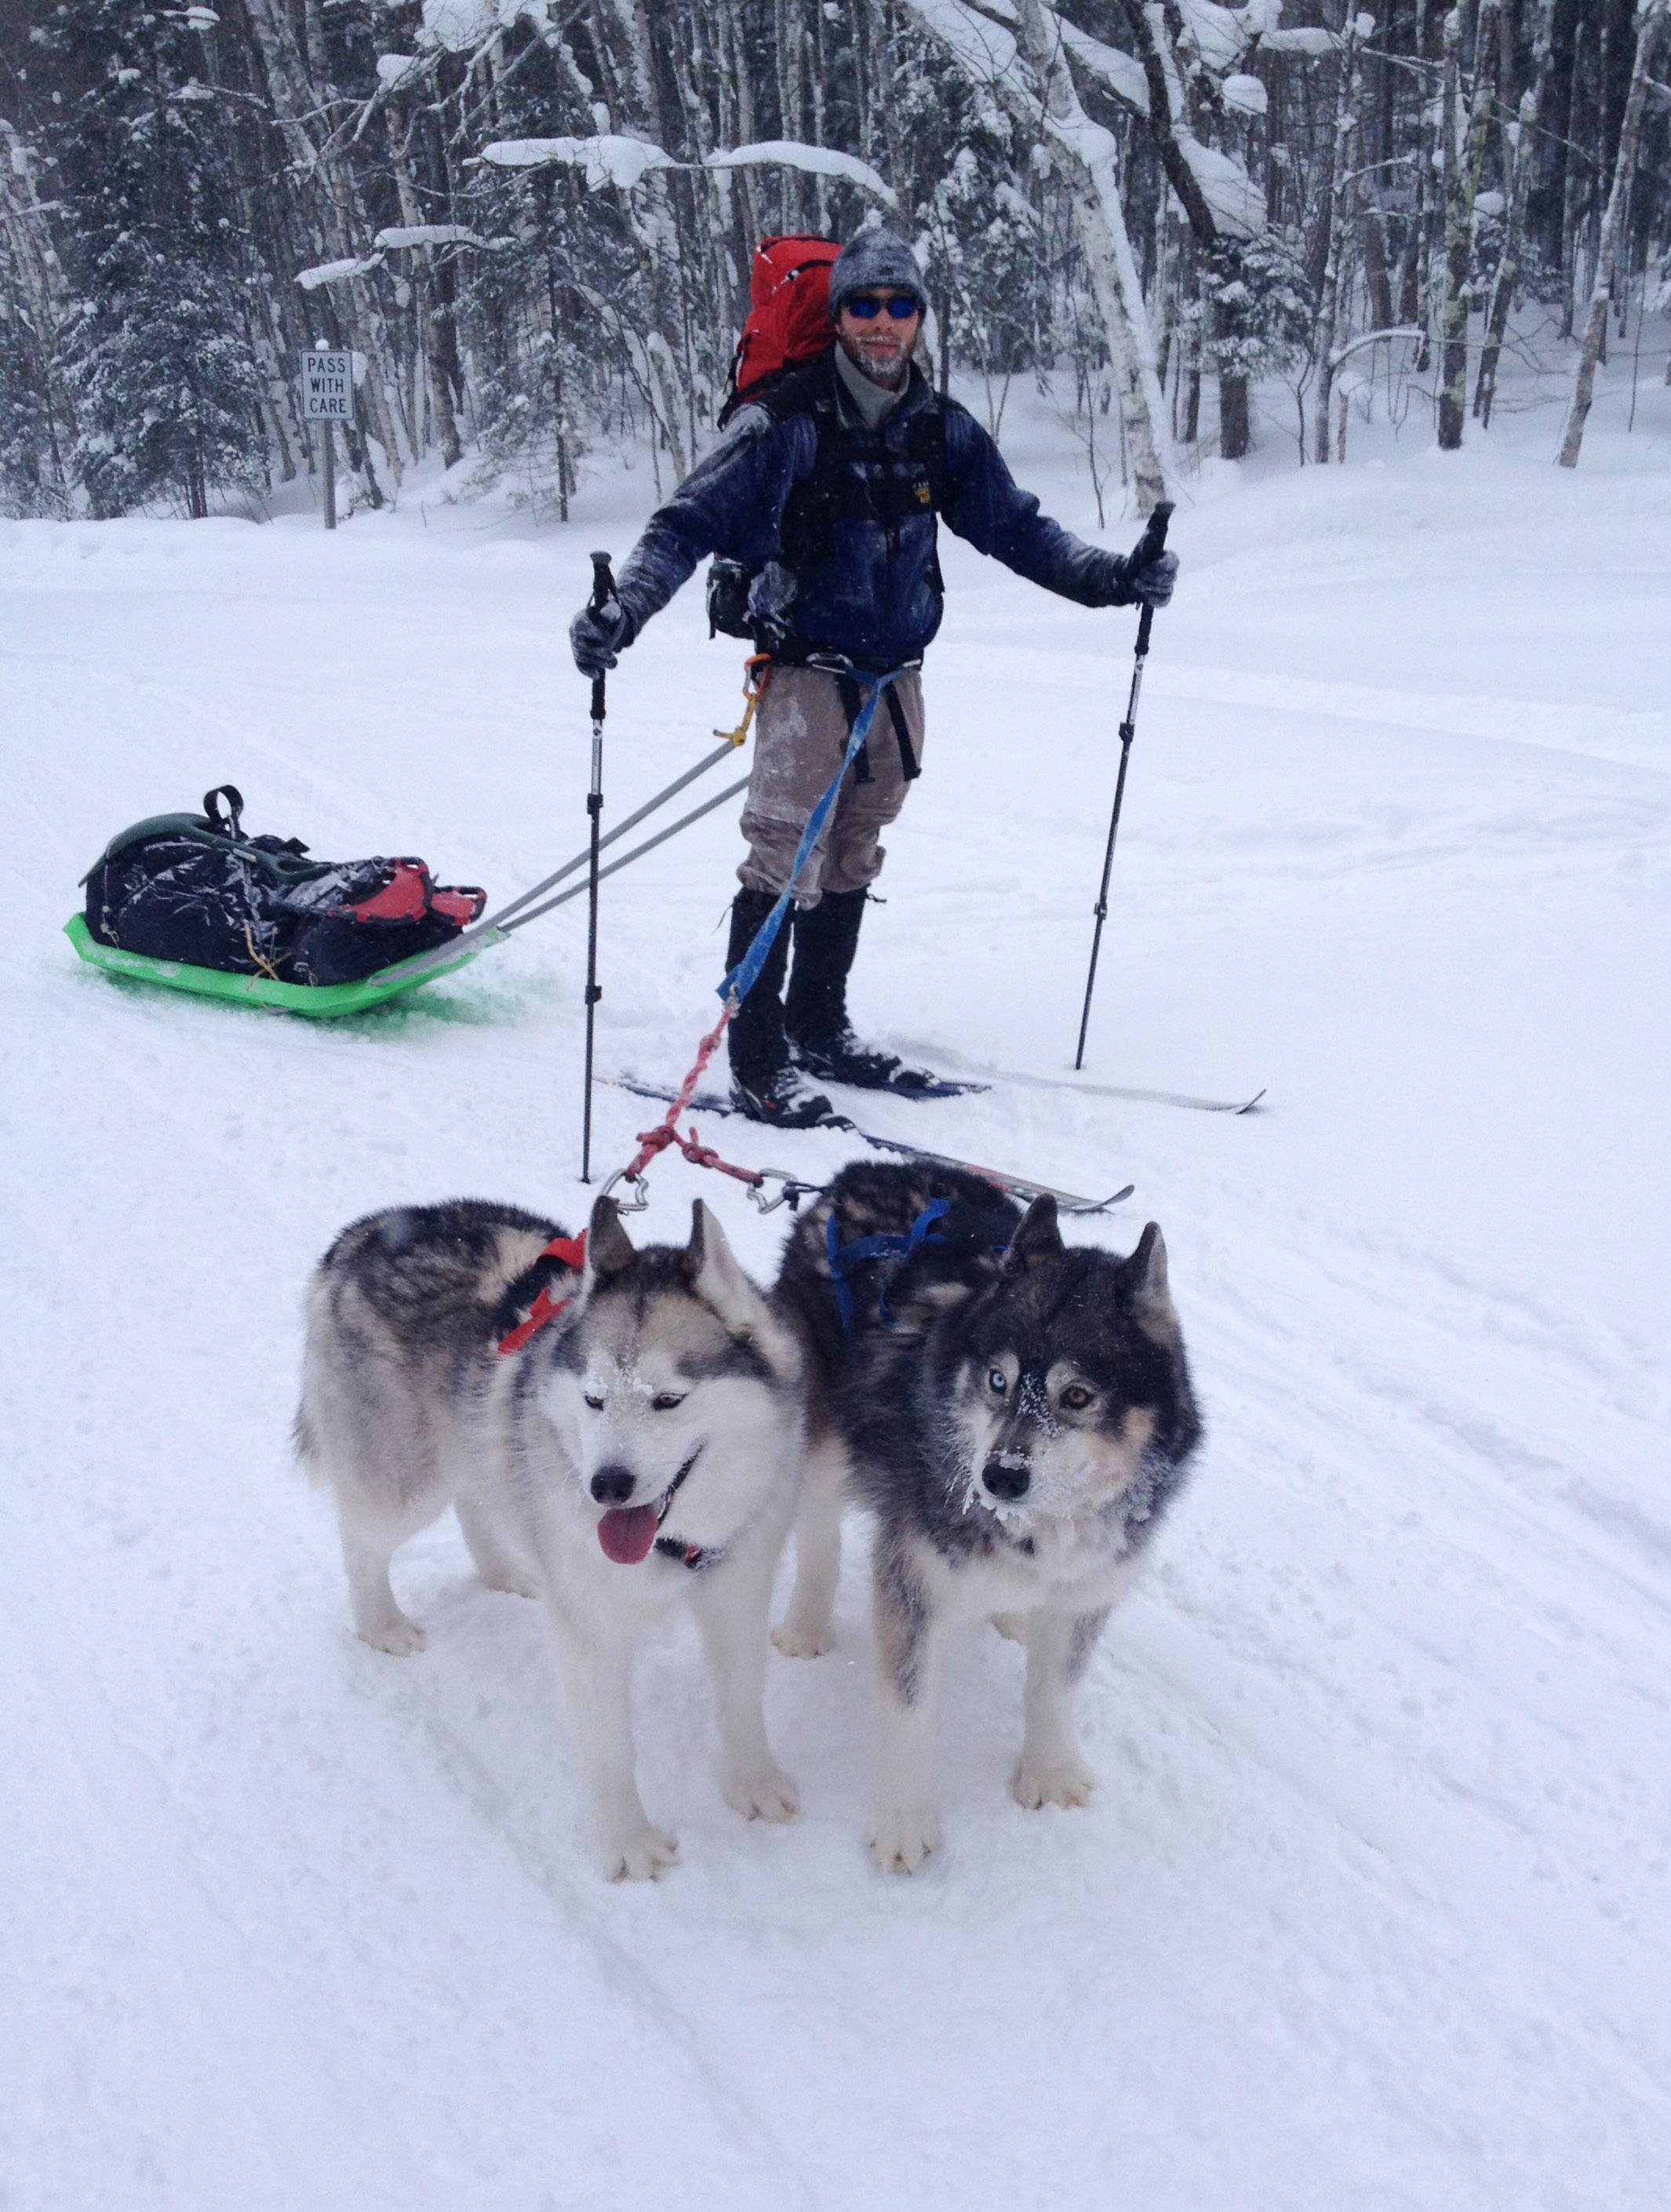 Eric Salm and his dogs, Escher, left, and Echo hike up a mountain road to go tent camping for the next three days in subzero temperatures along the Engineers Memorial Highway in Porcupine Mountains State Park in Michigan last month.